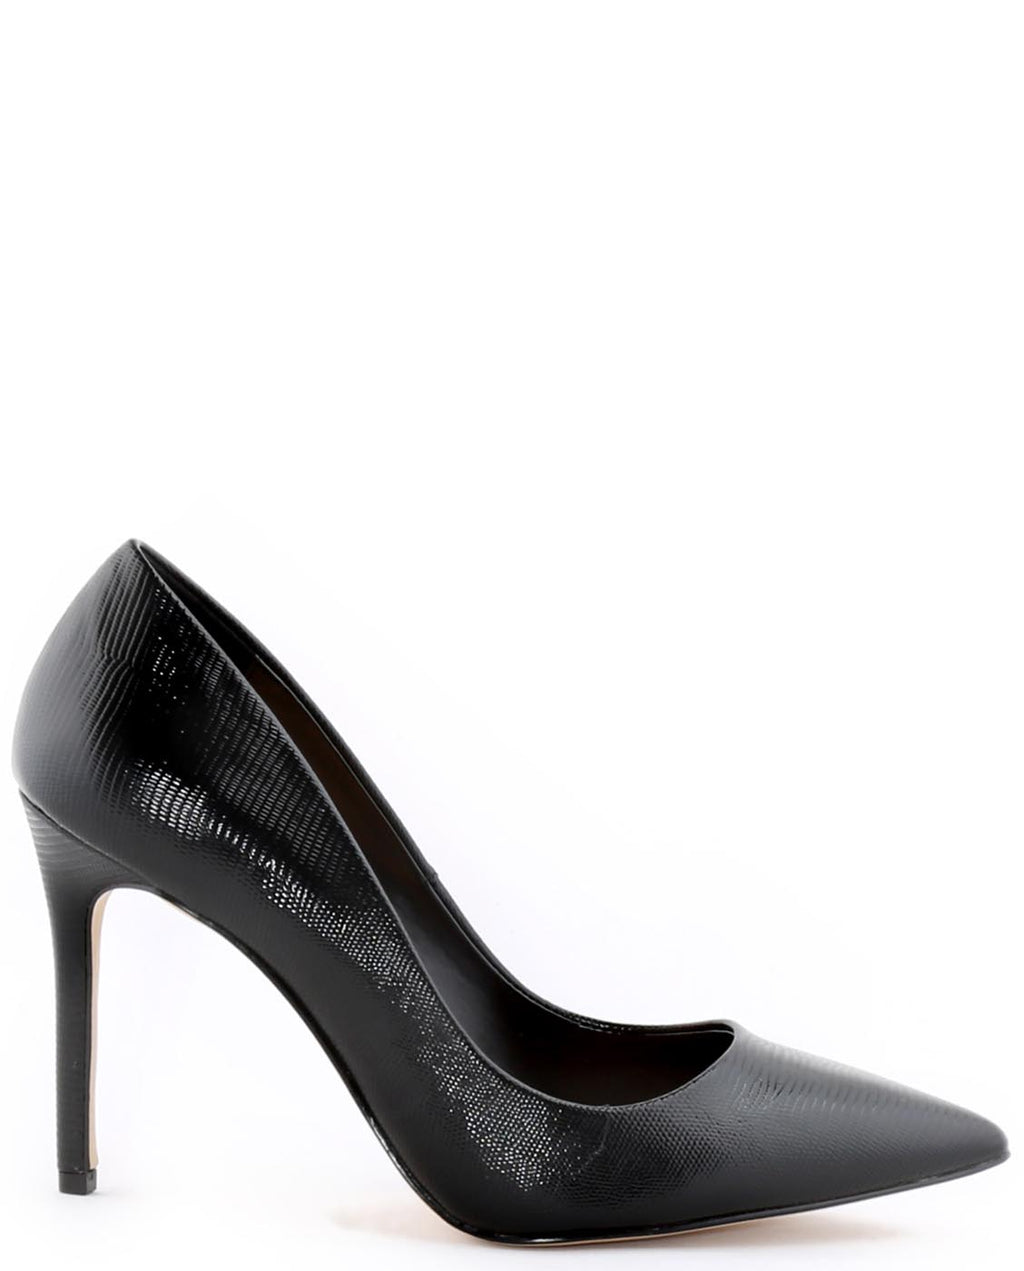 Textured Leather Heels - Fashion You Up